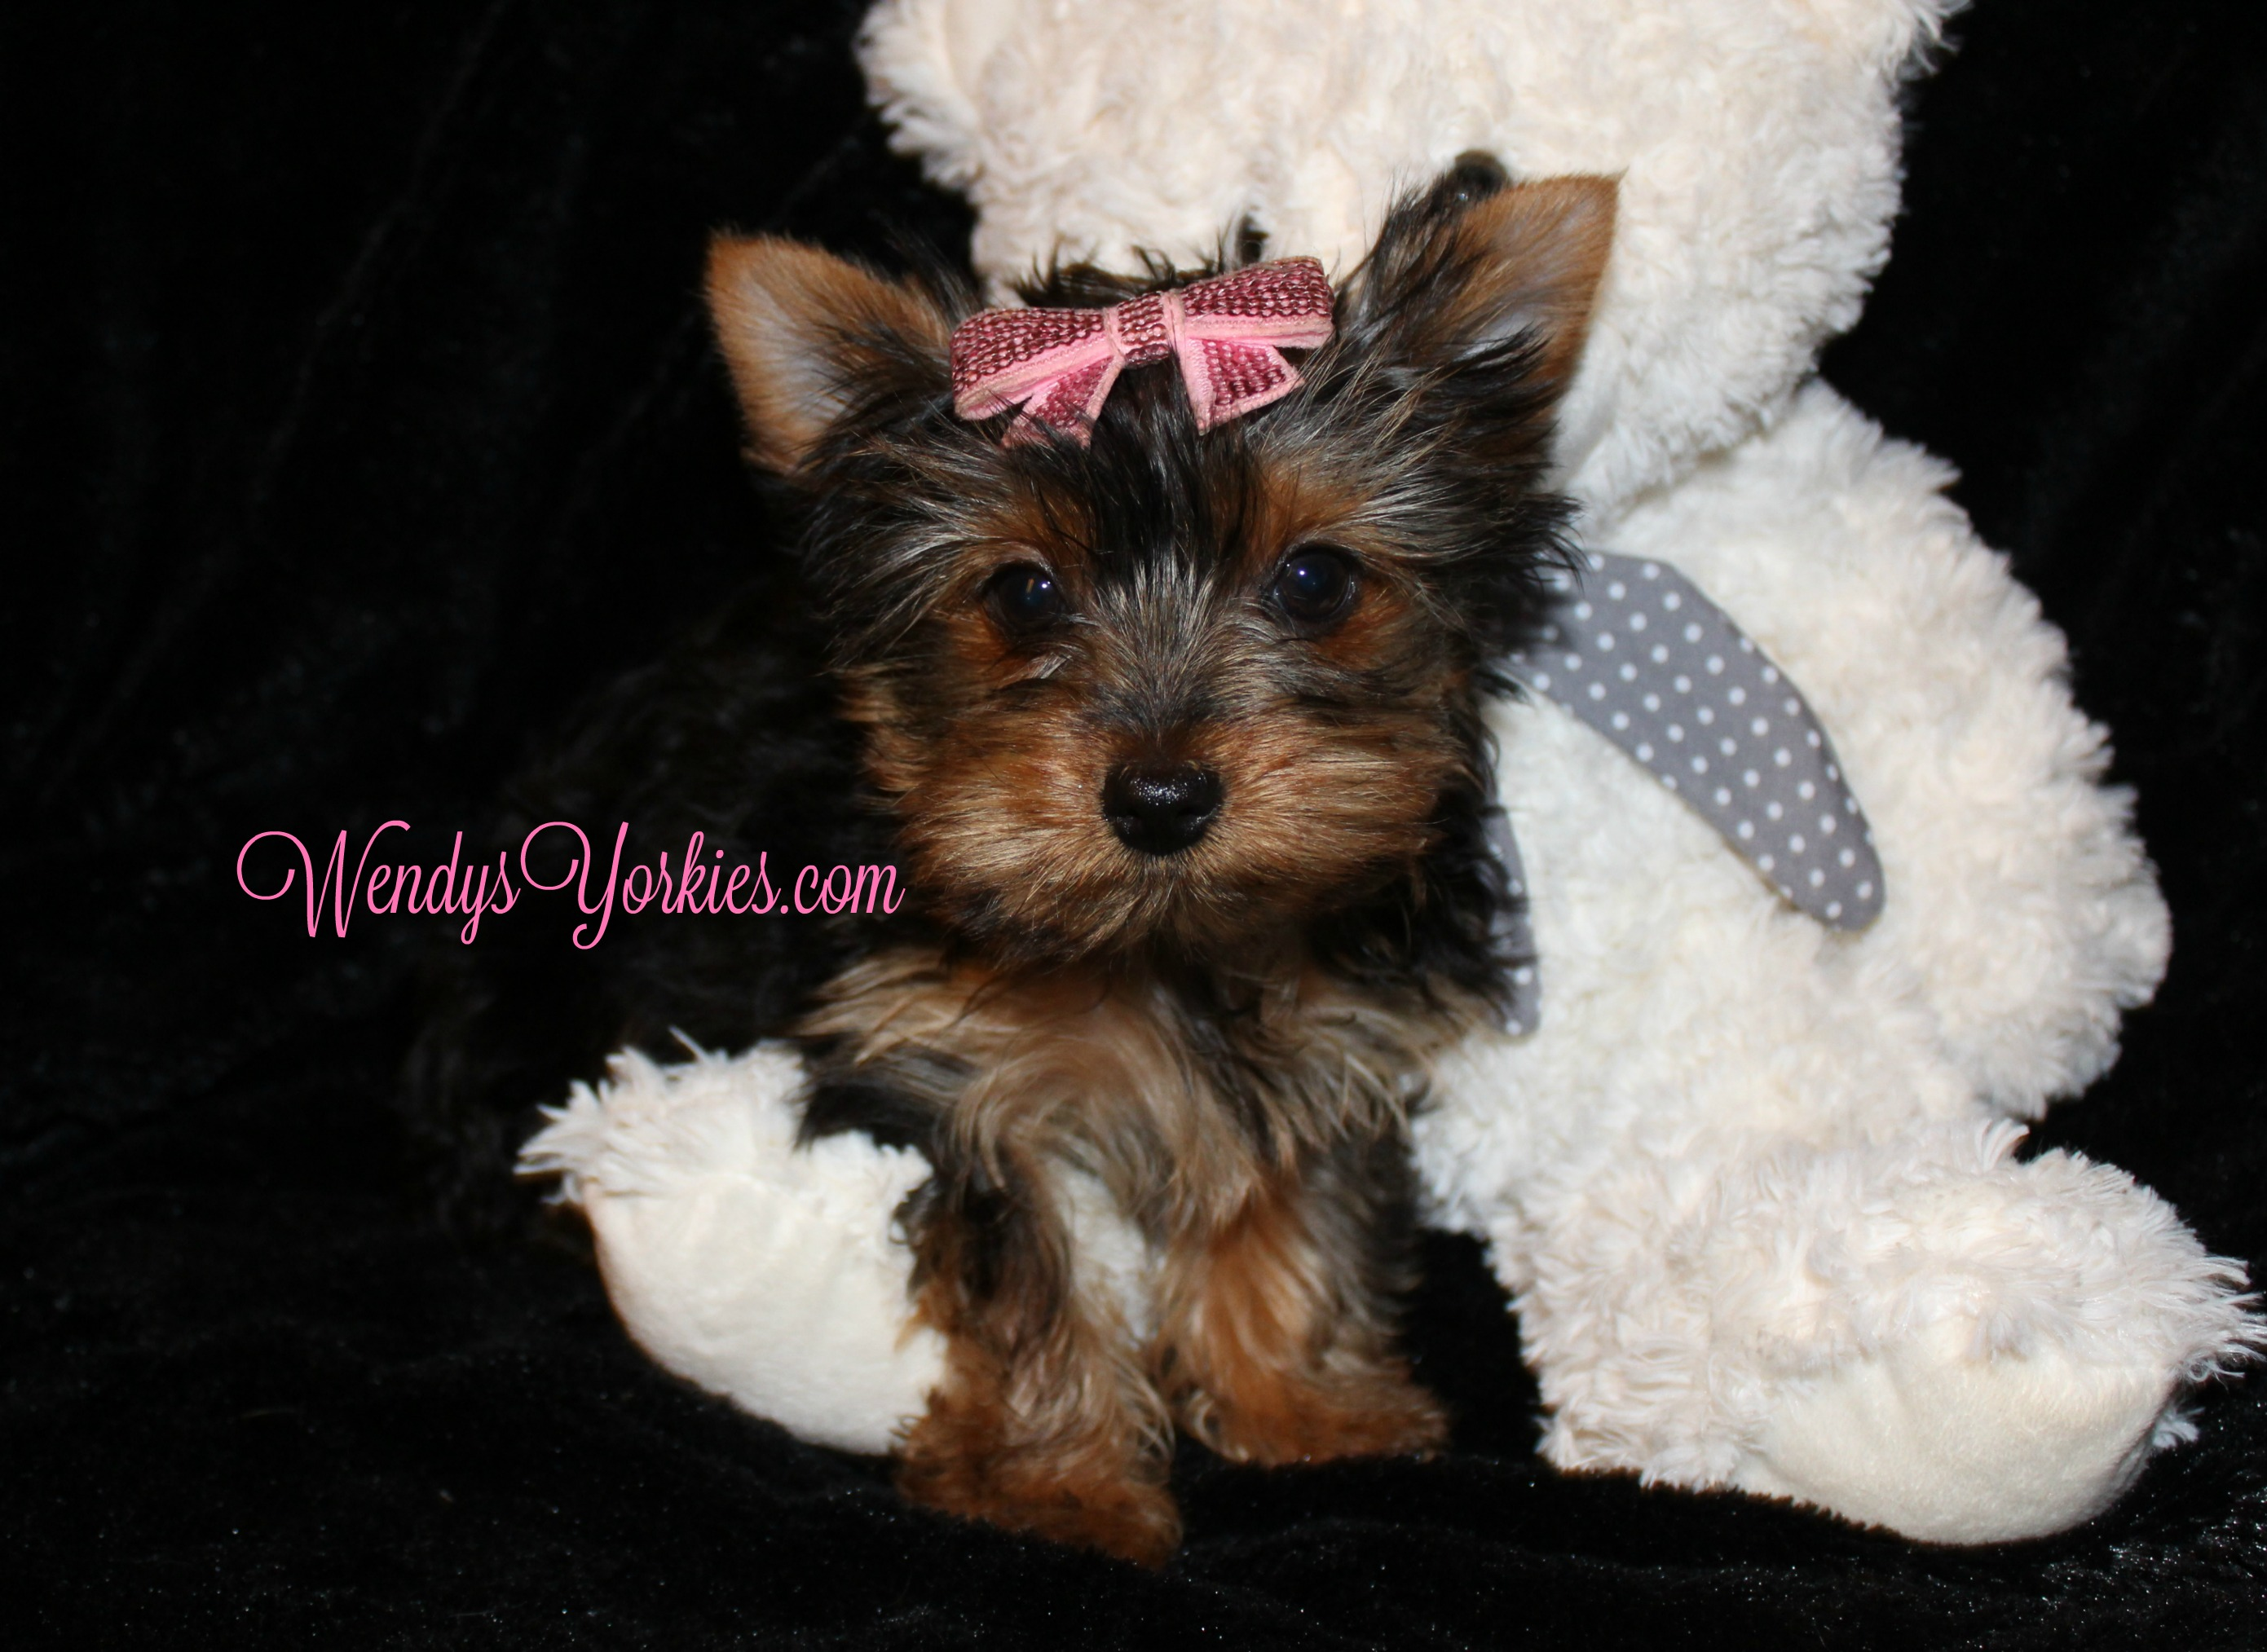 WendysYorkies.com, Teacup YOrkie puppy for sale, Lacy